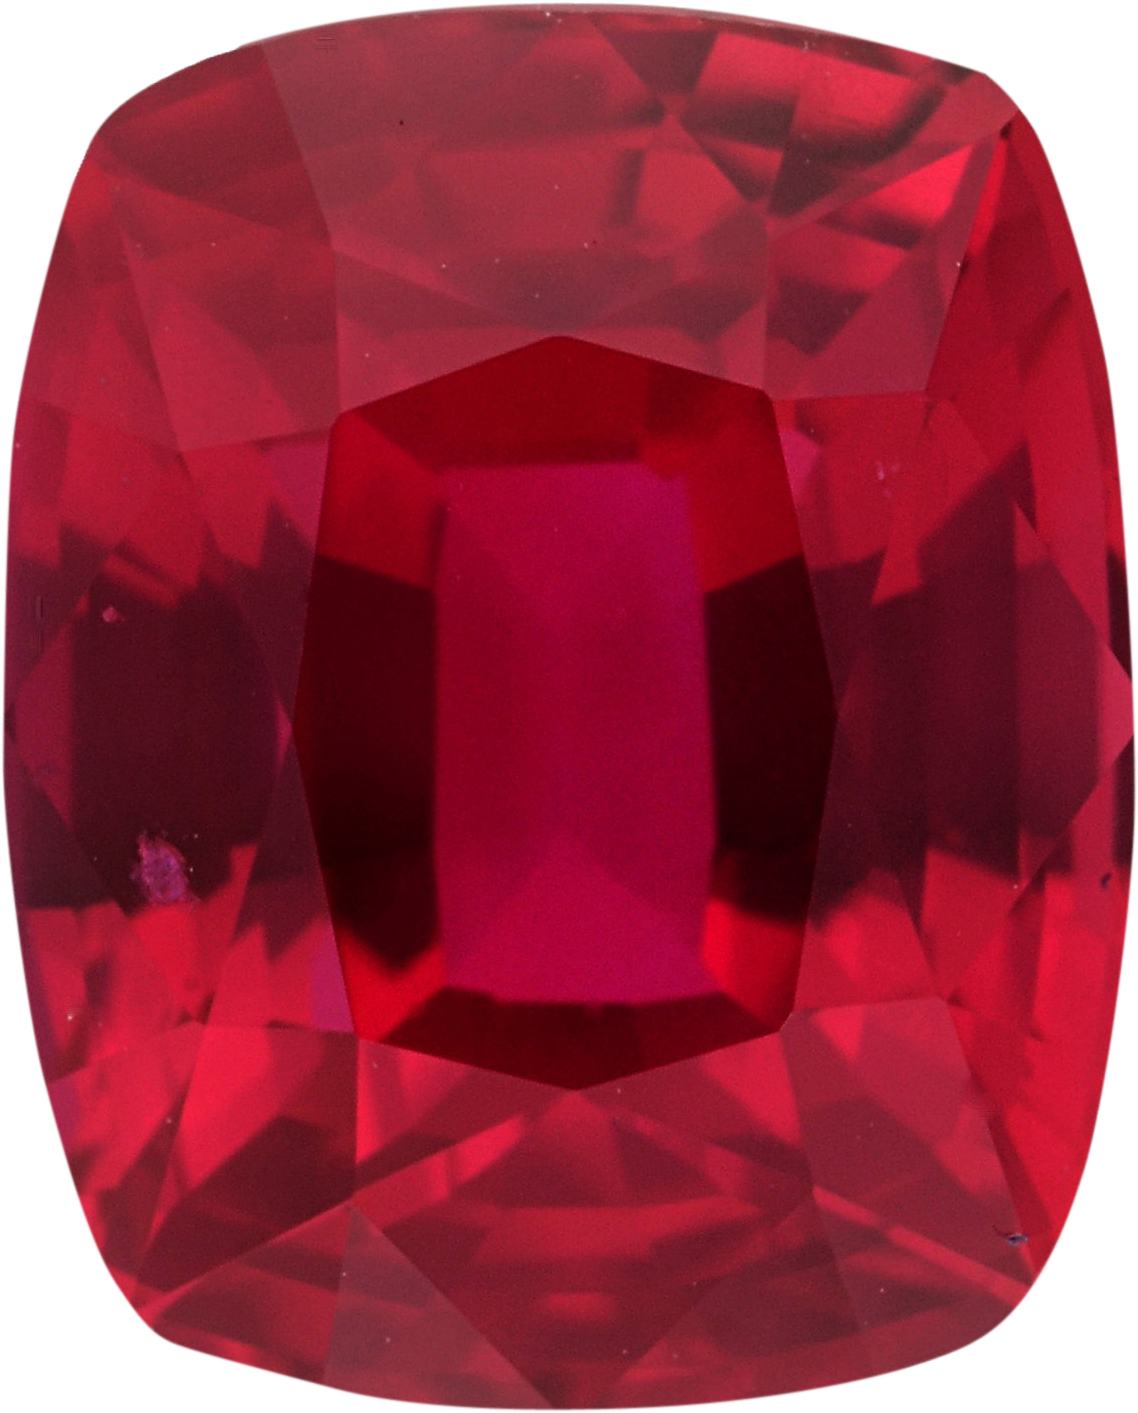 Exceptional Cushion Cut Loose Ruby Gem, Deep Red Color, 7 x 5.68 mm, 1.65 carats